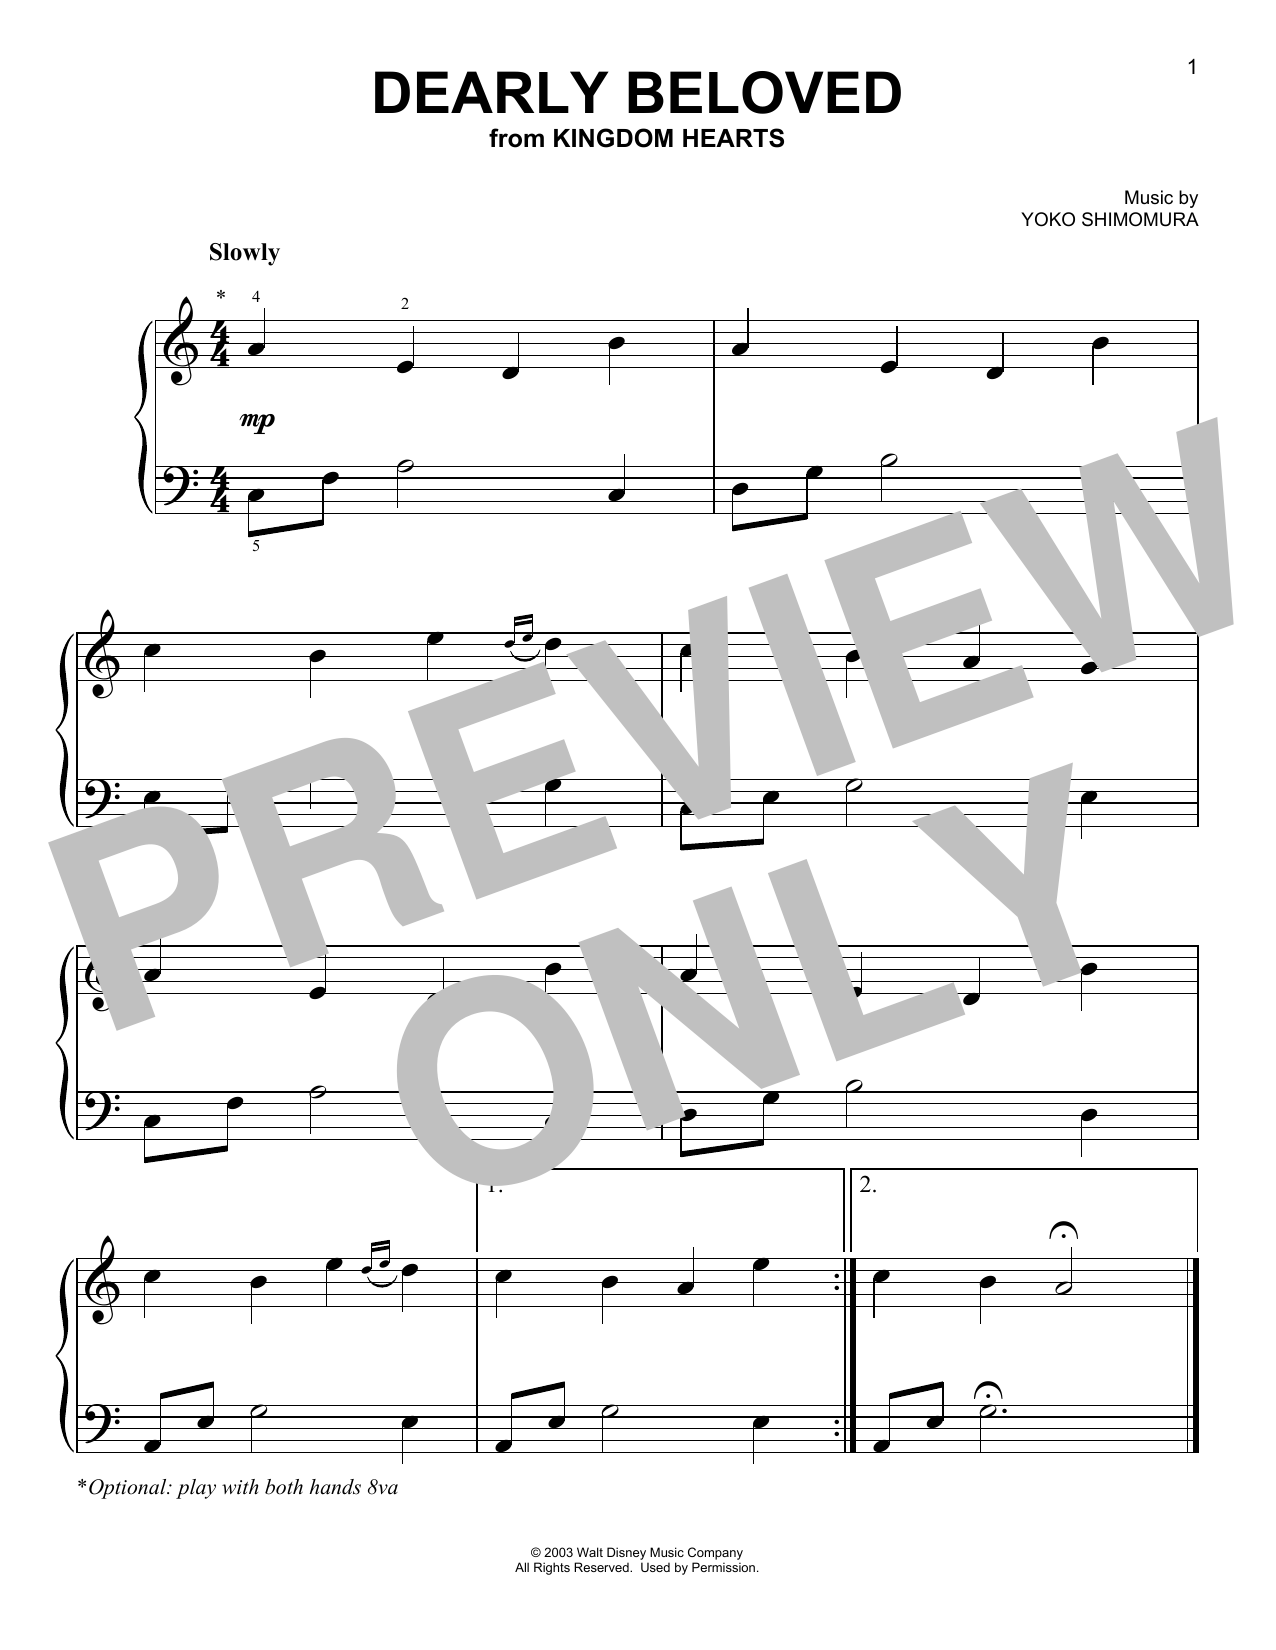 Yoko Shimomura Dearly Beloved (from Kingdom Hearts) sheet music notes and chords. Download Printable PDF.